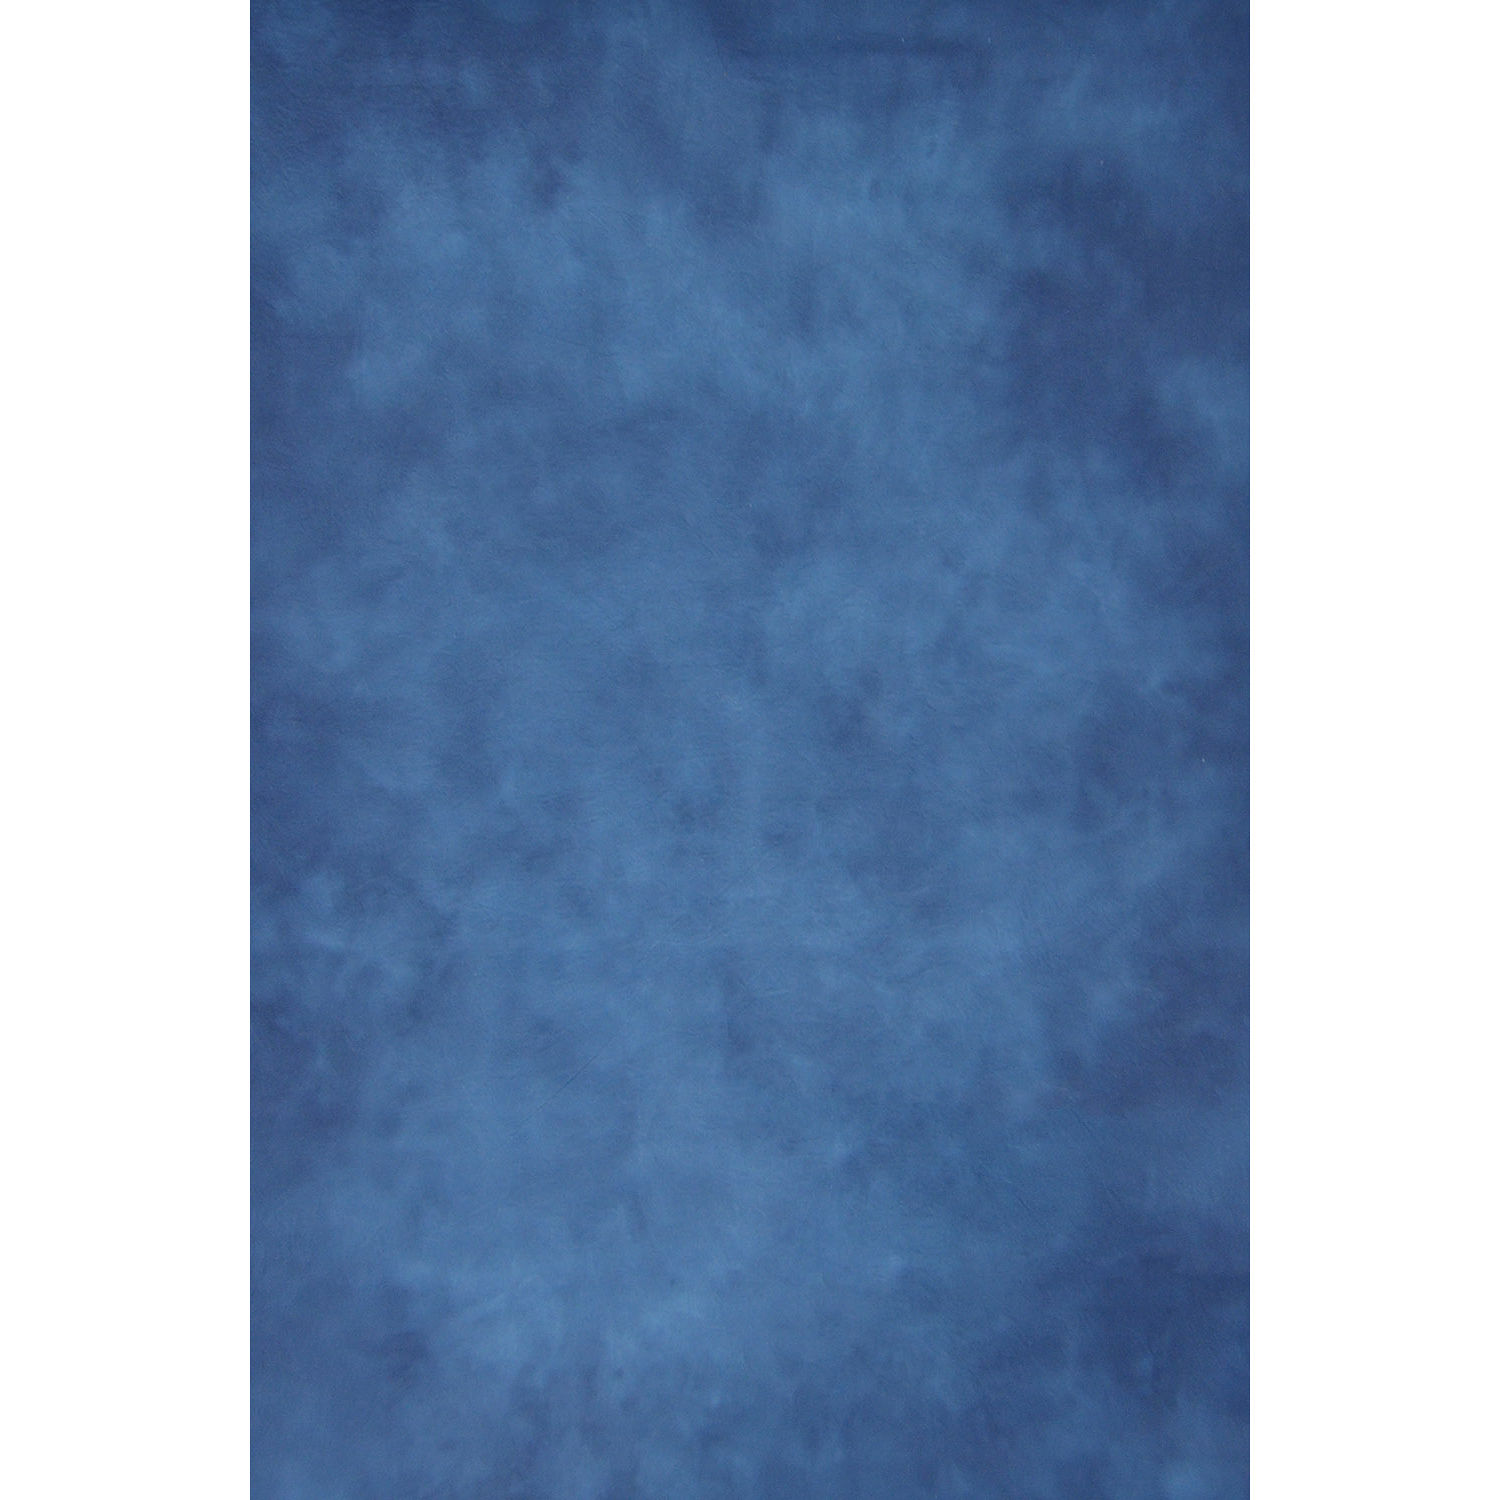 Savage Painted Canvas Backdrop 8x12 Midnight Cp506